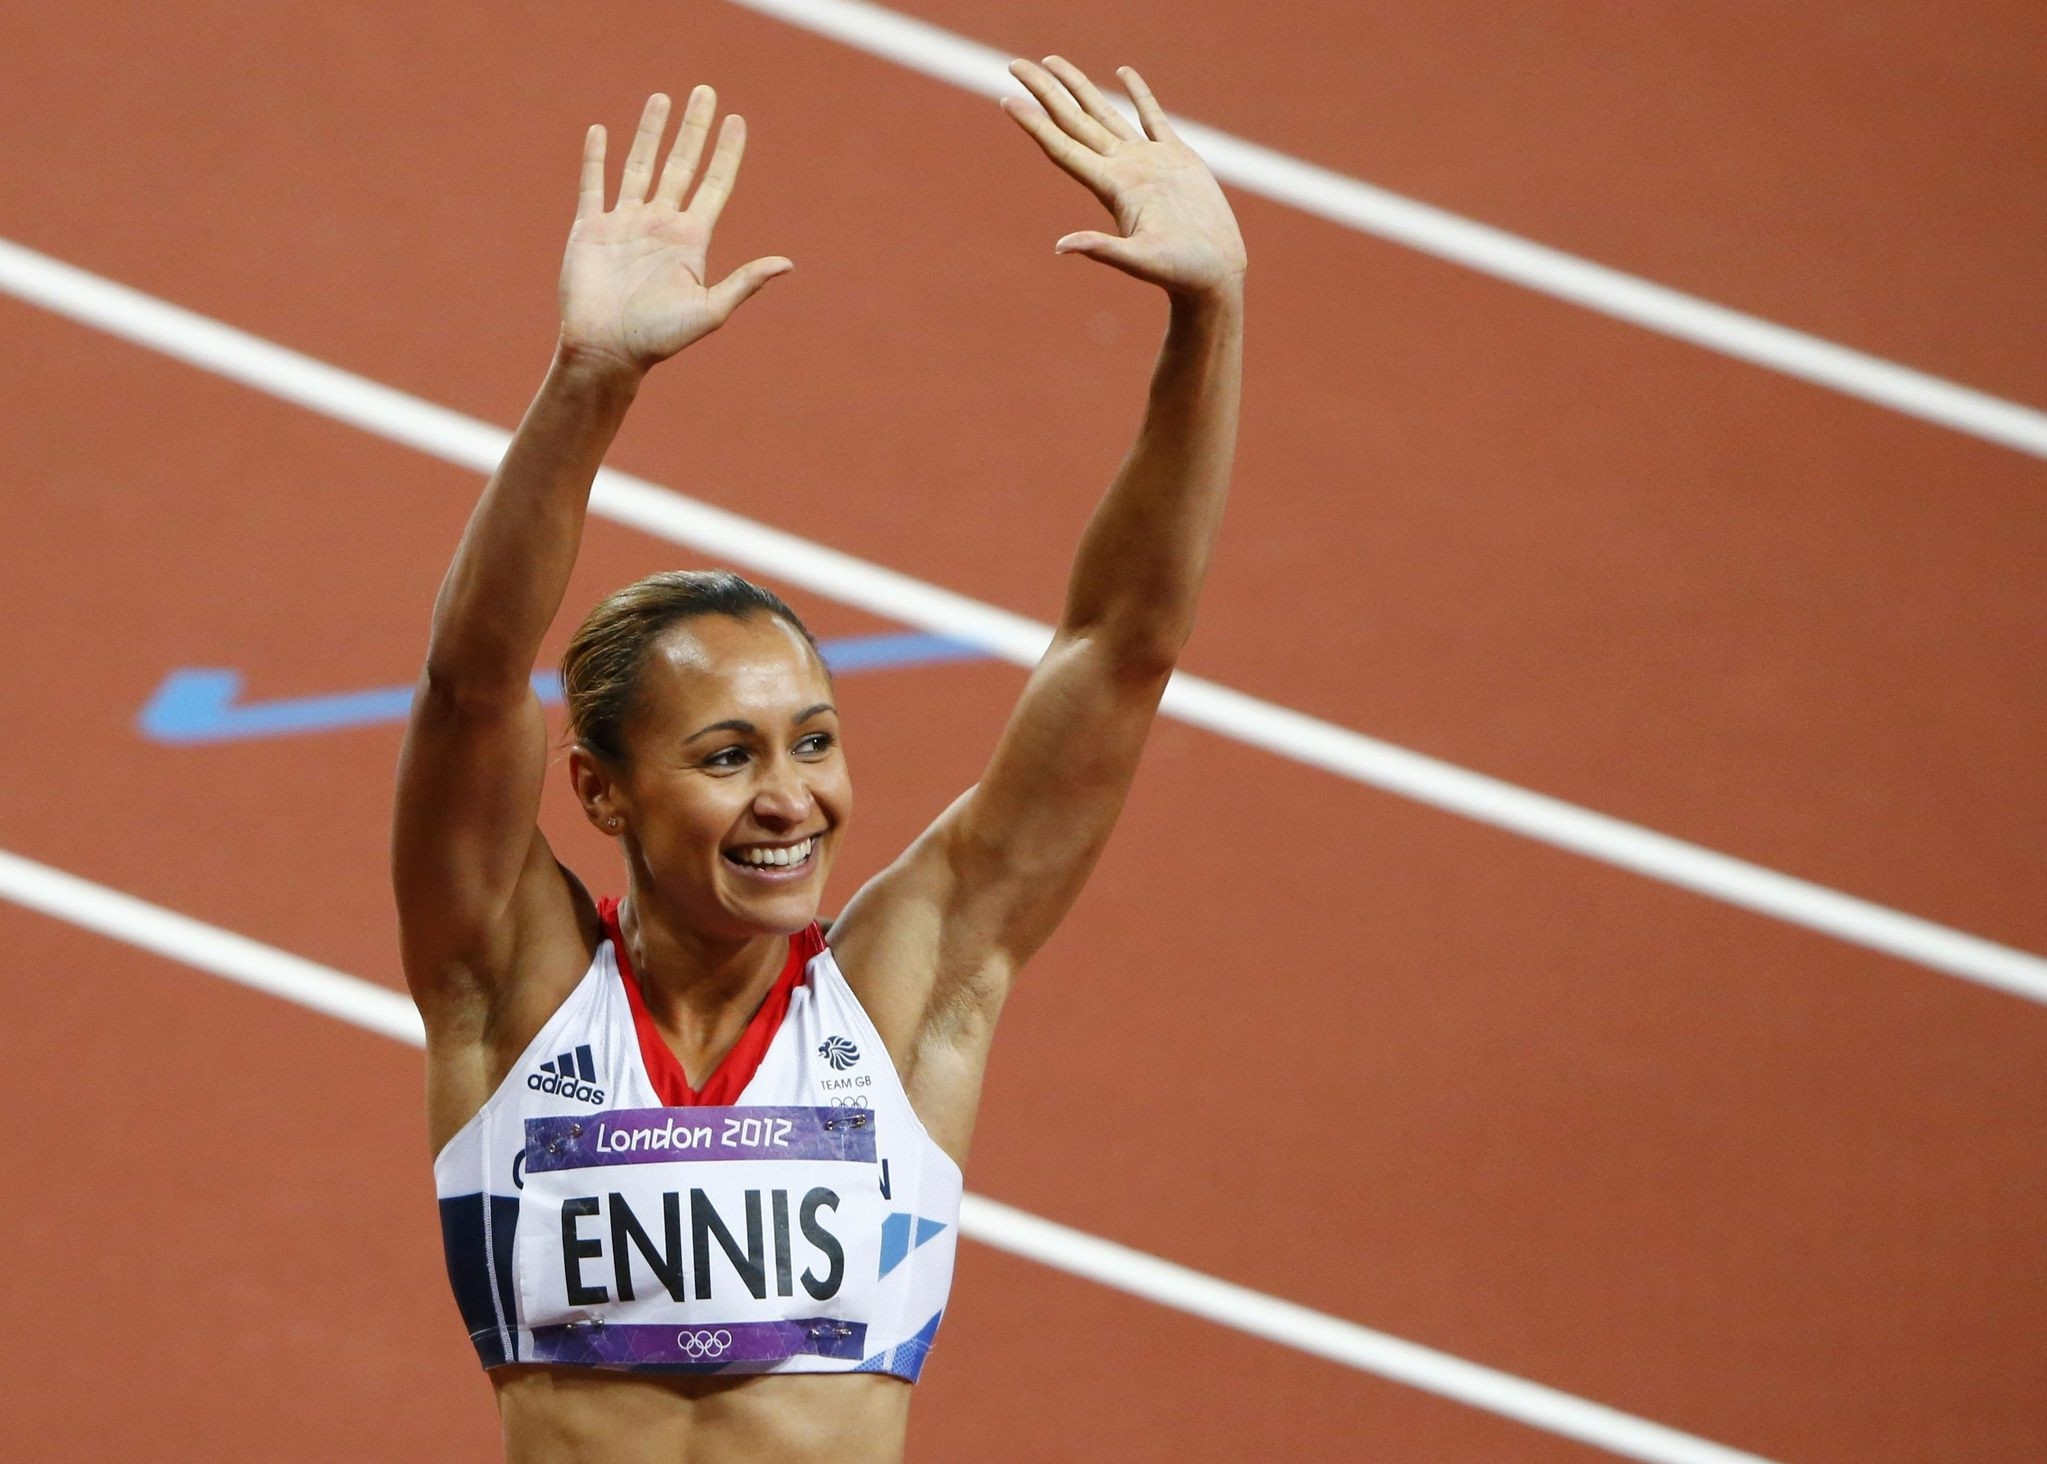 Britain's Jessica Ennis celebrates after finishing first in her women's heptathlon 200m heat at the London 2012 Olympic Games at the Olympic Stadium August 3, 2012. (REUTERS Photo)